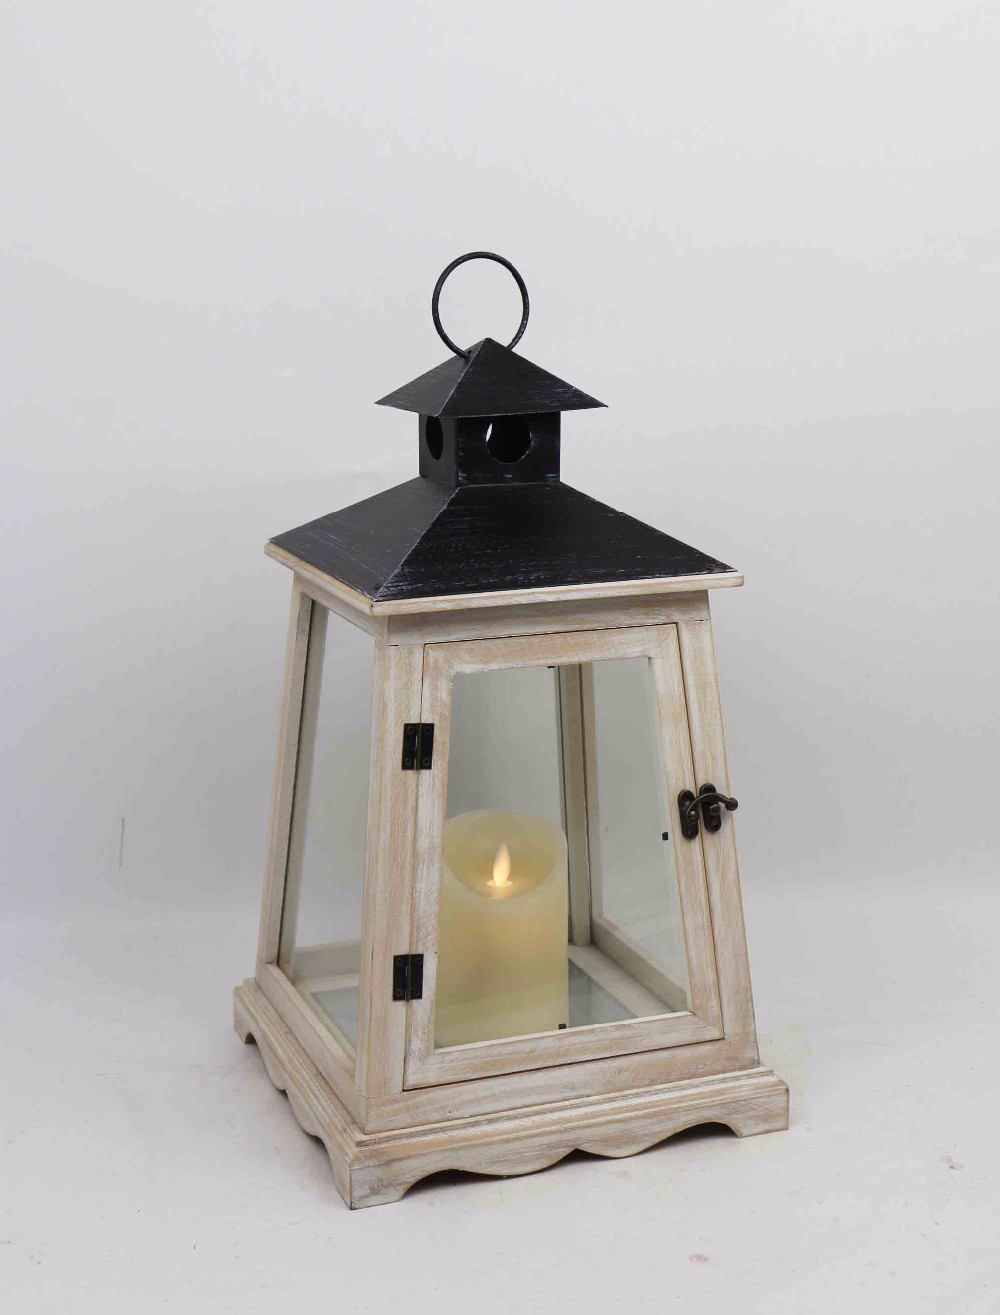 Ml 2025 Square New Style Windproof Wooden Iron Glass Outdoor Lantern Stand Buy Wooden Lantern Lantern Stand Outdoor Lantern Stand Product On Alibaba Com